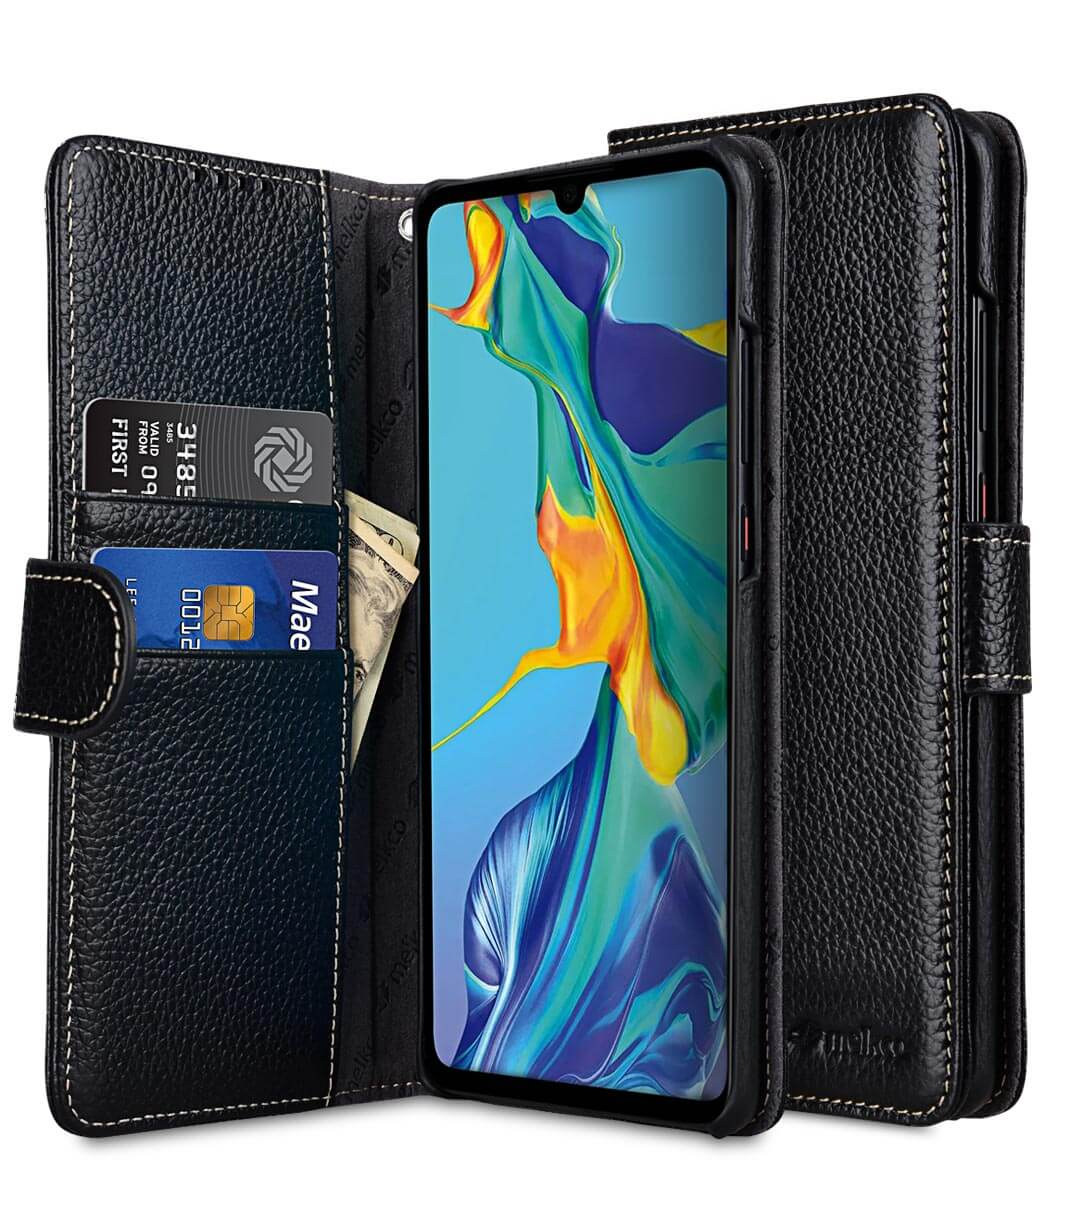 Premium Leather Wallet Book Type Case for Huawei P30 Pro